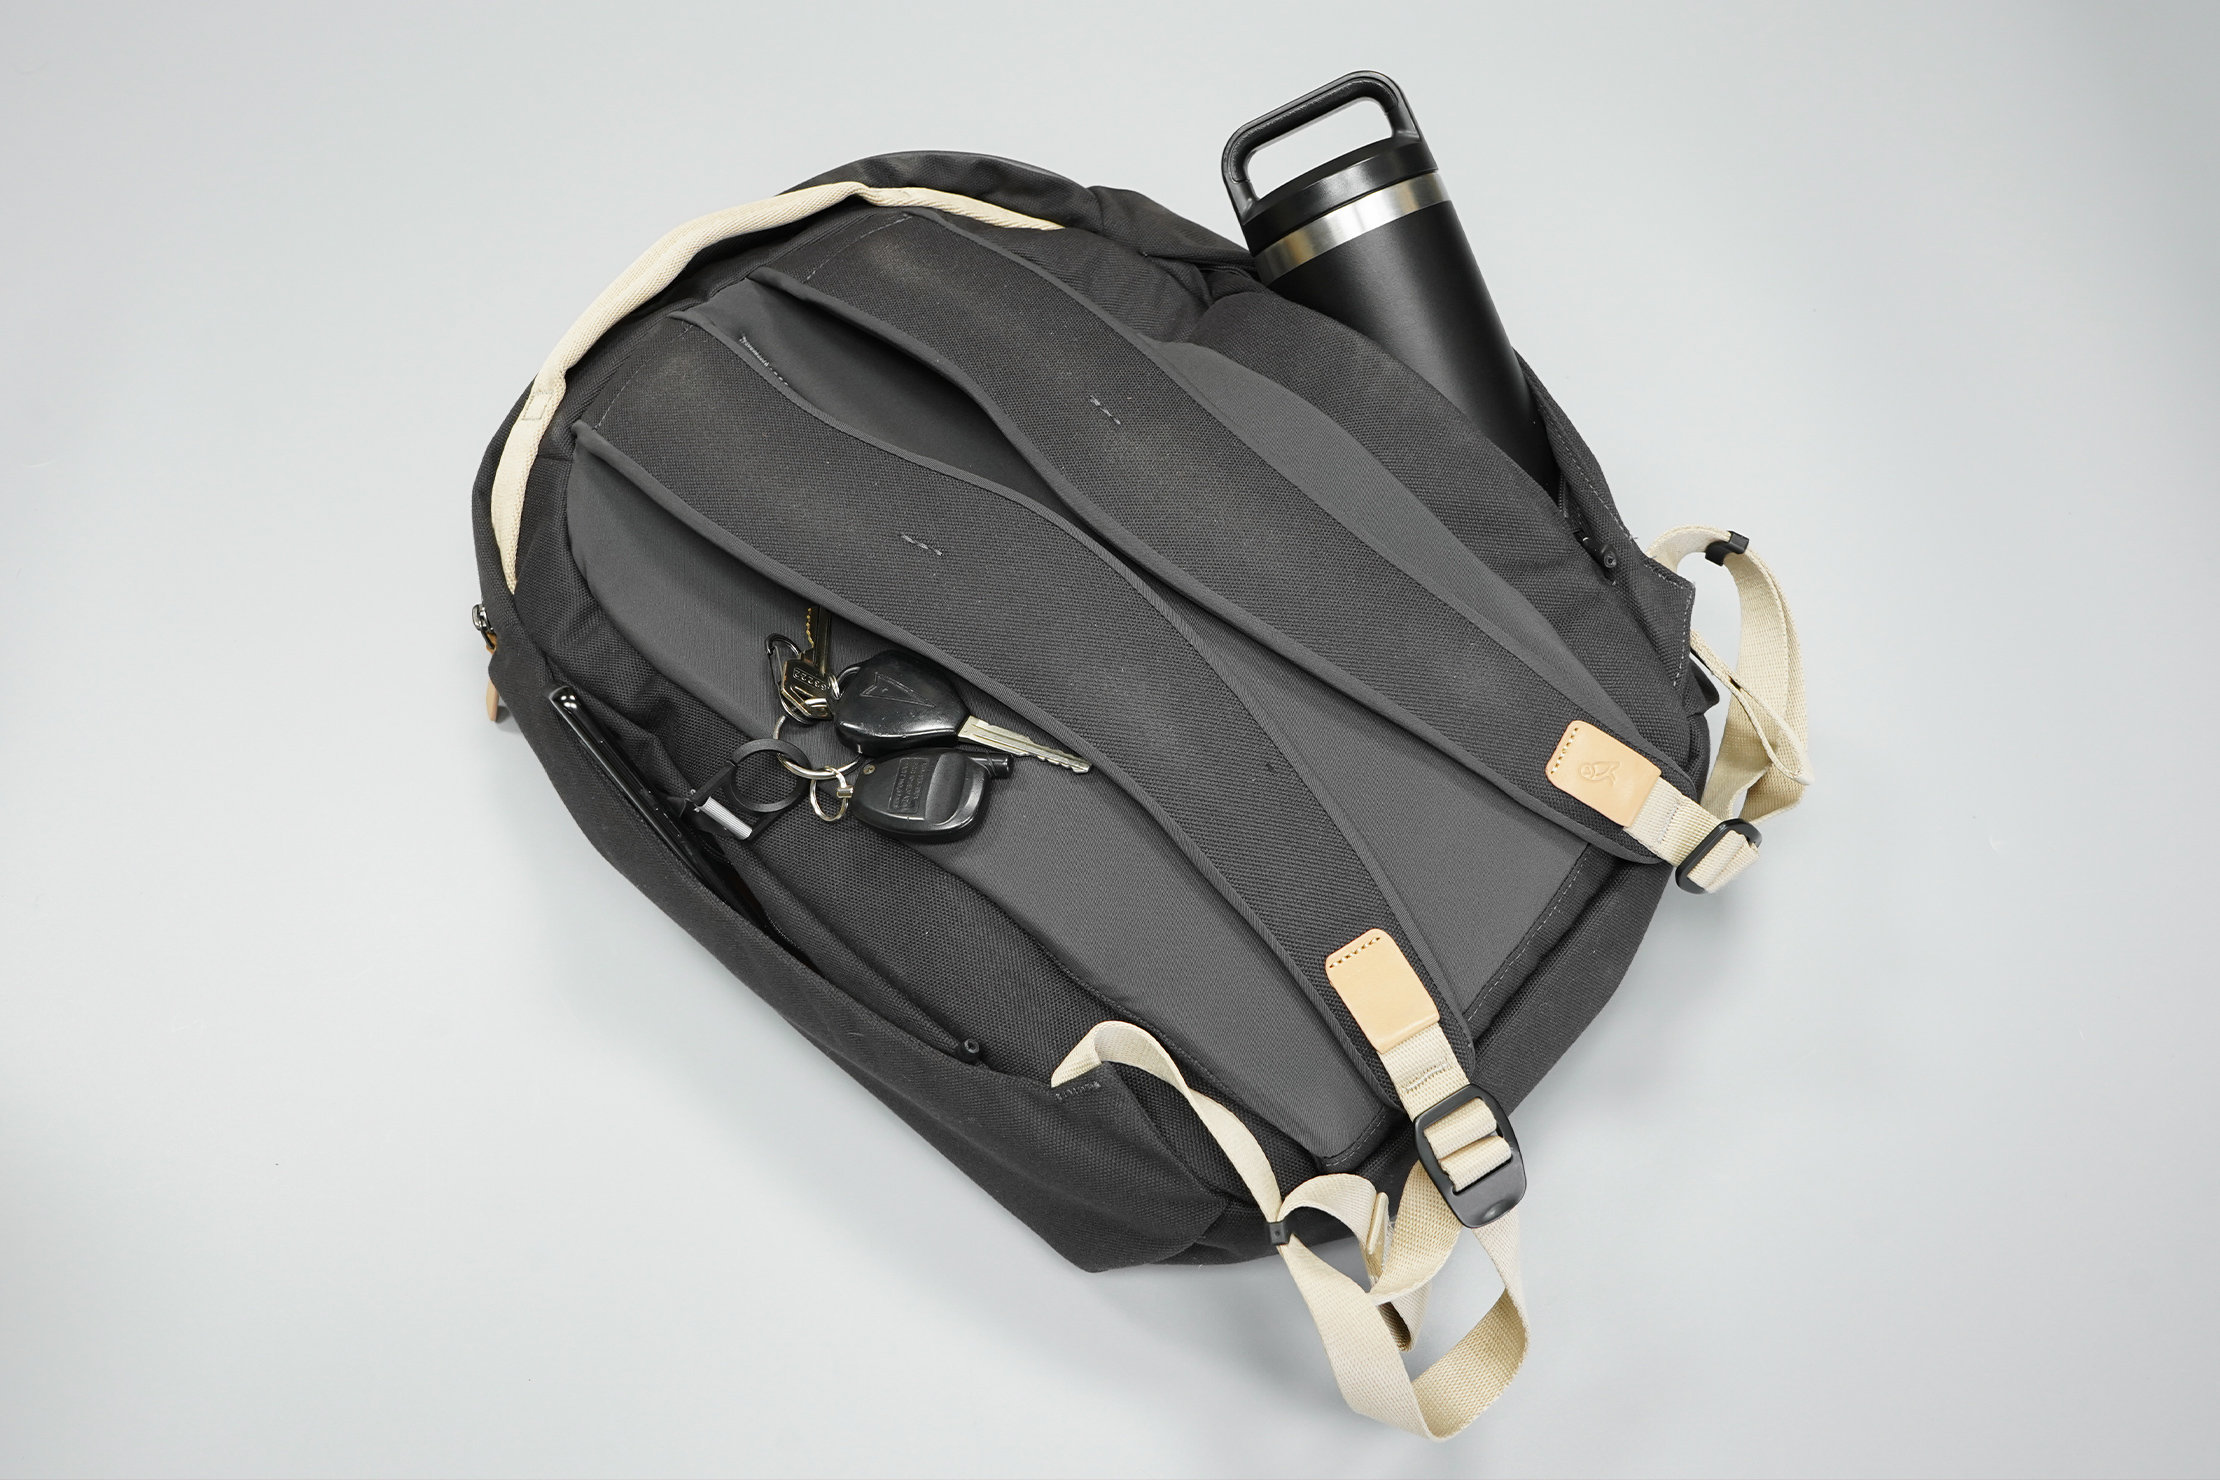 Bellroy Transit Workpack | No need to go overboard, the simple harness system is enough for daypack duties